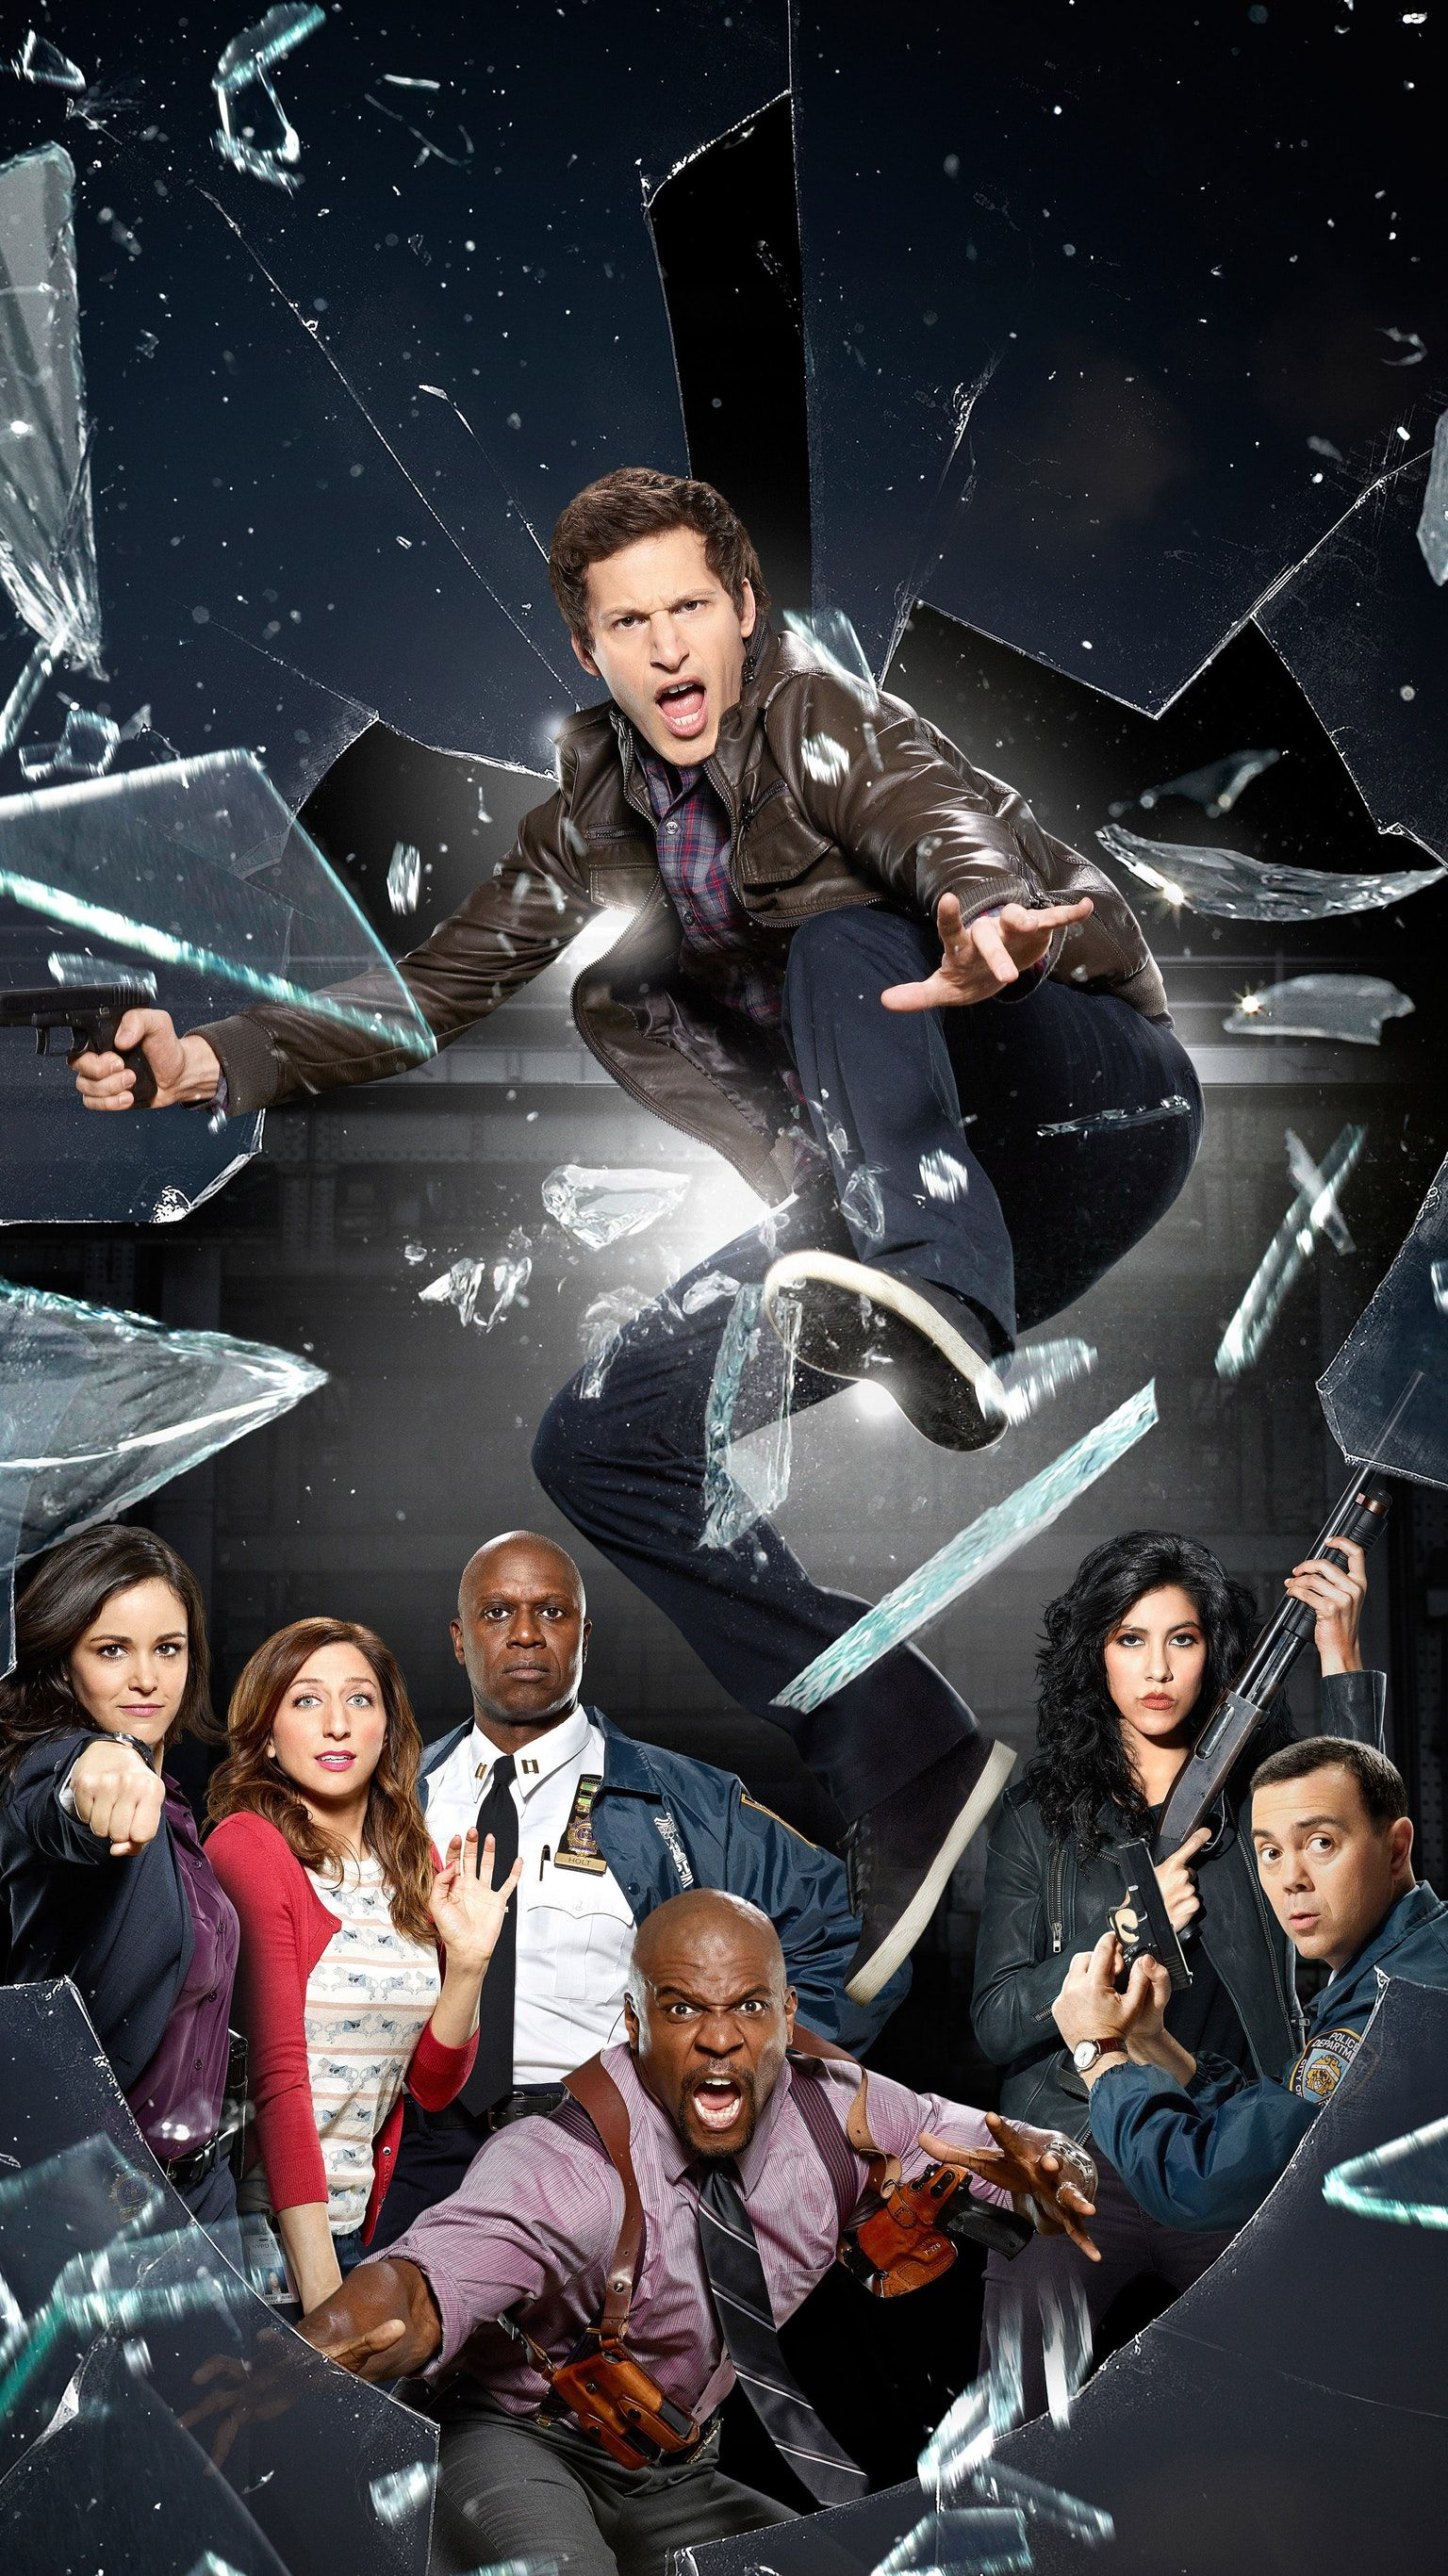 Brooklyn Nine-Nine Phone Wallpaper | Wallpapers/Patterns ...